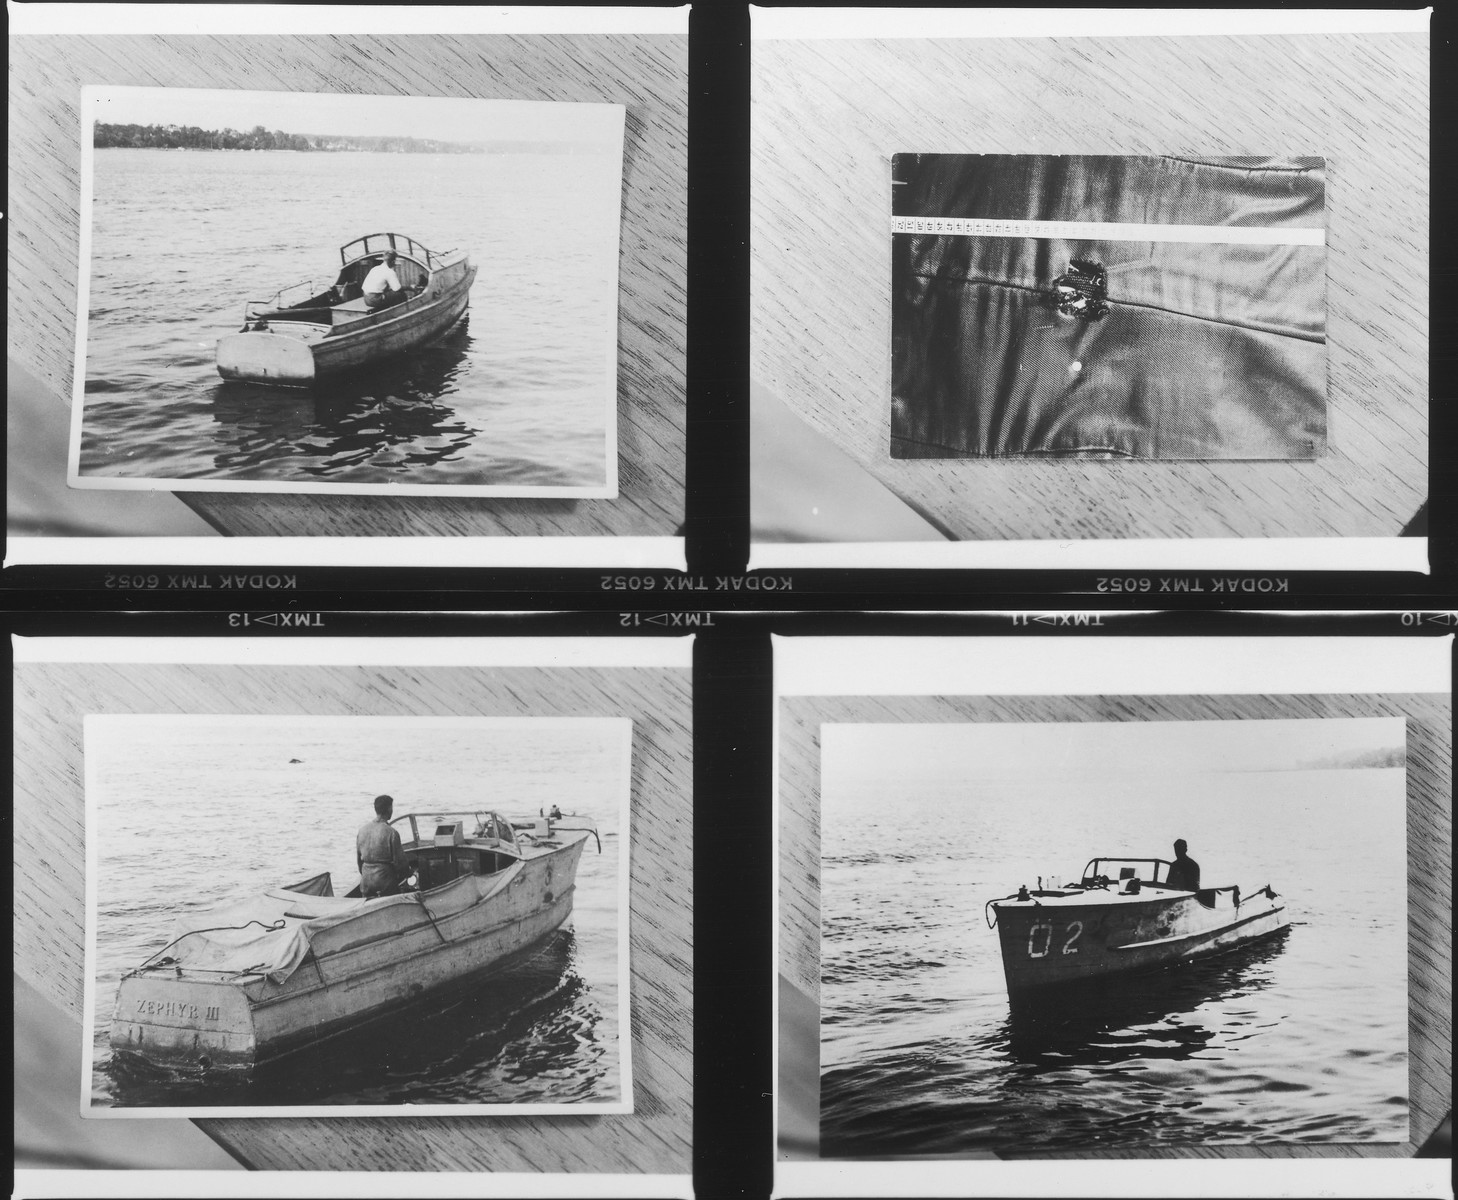 Danish fishing boats used in the rescue of Jews during the occupation of Denmark.